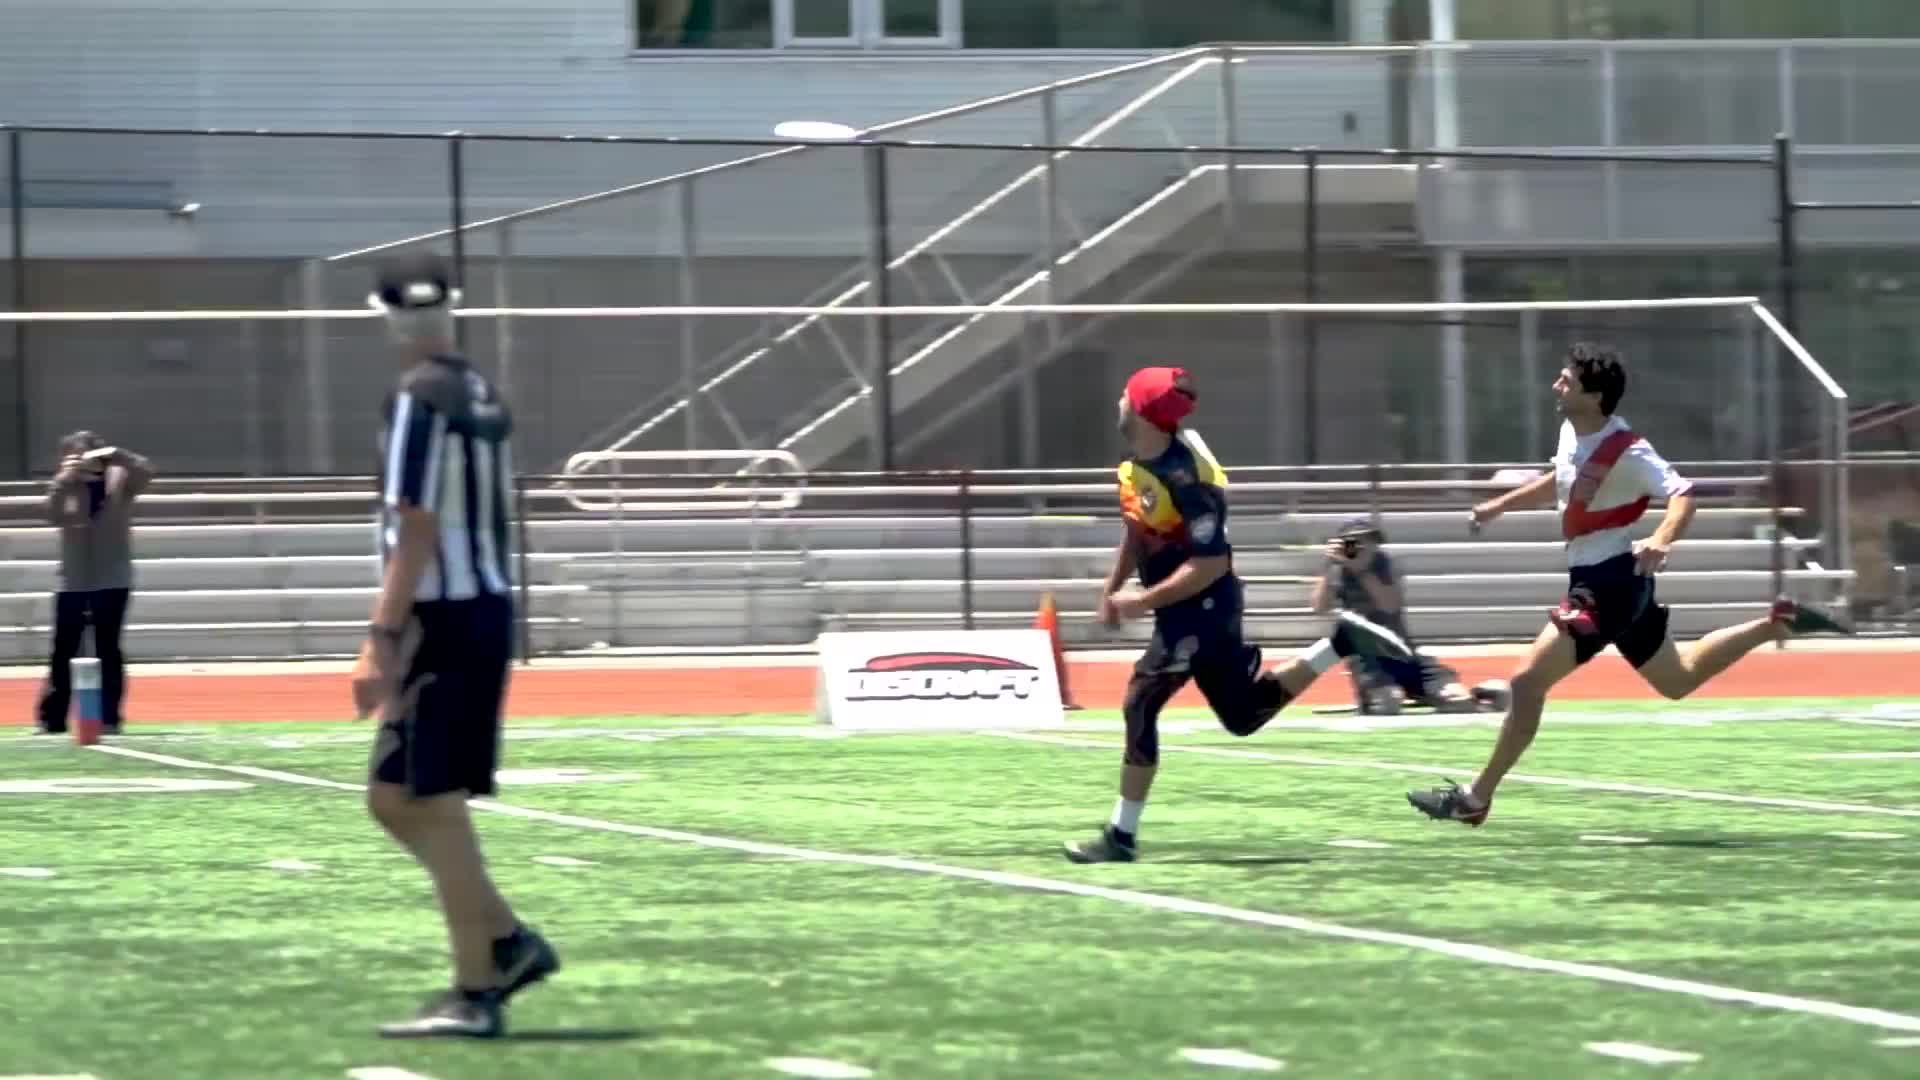 american ultimate disc league, audl, highlights, kyle henke, top 10, ultimate, ultimate frisbee, Lior Givol Layout Goal GIFs